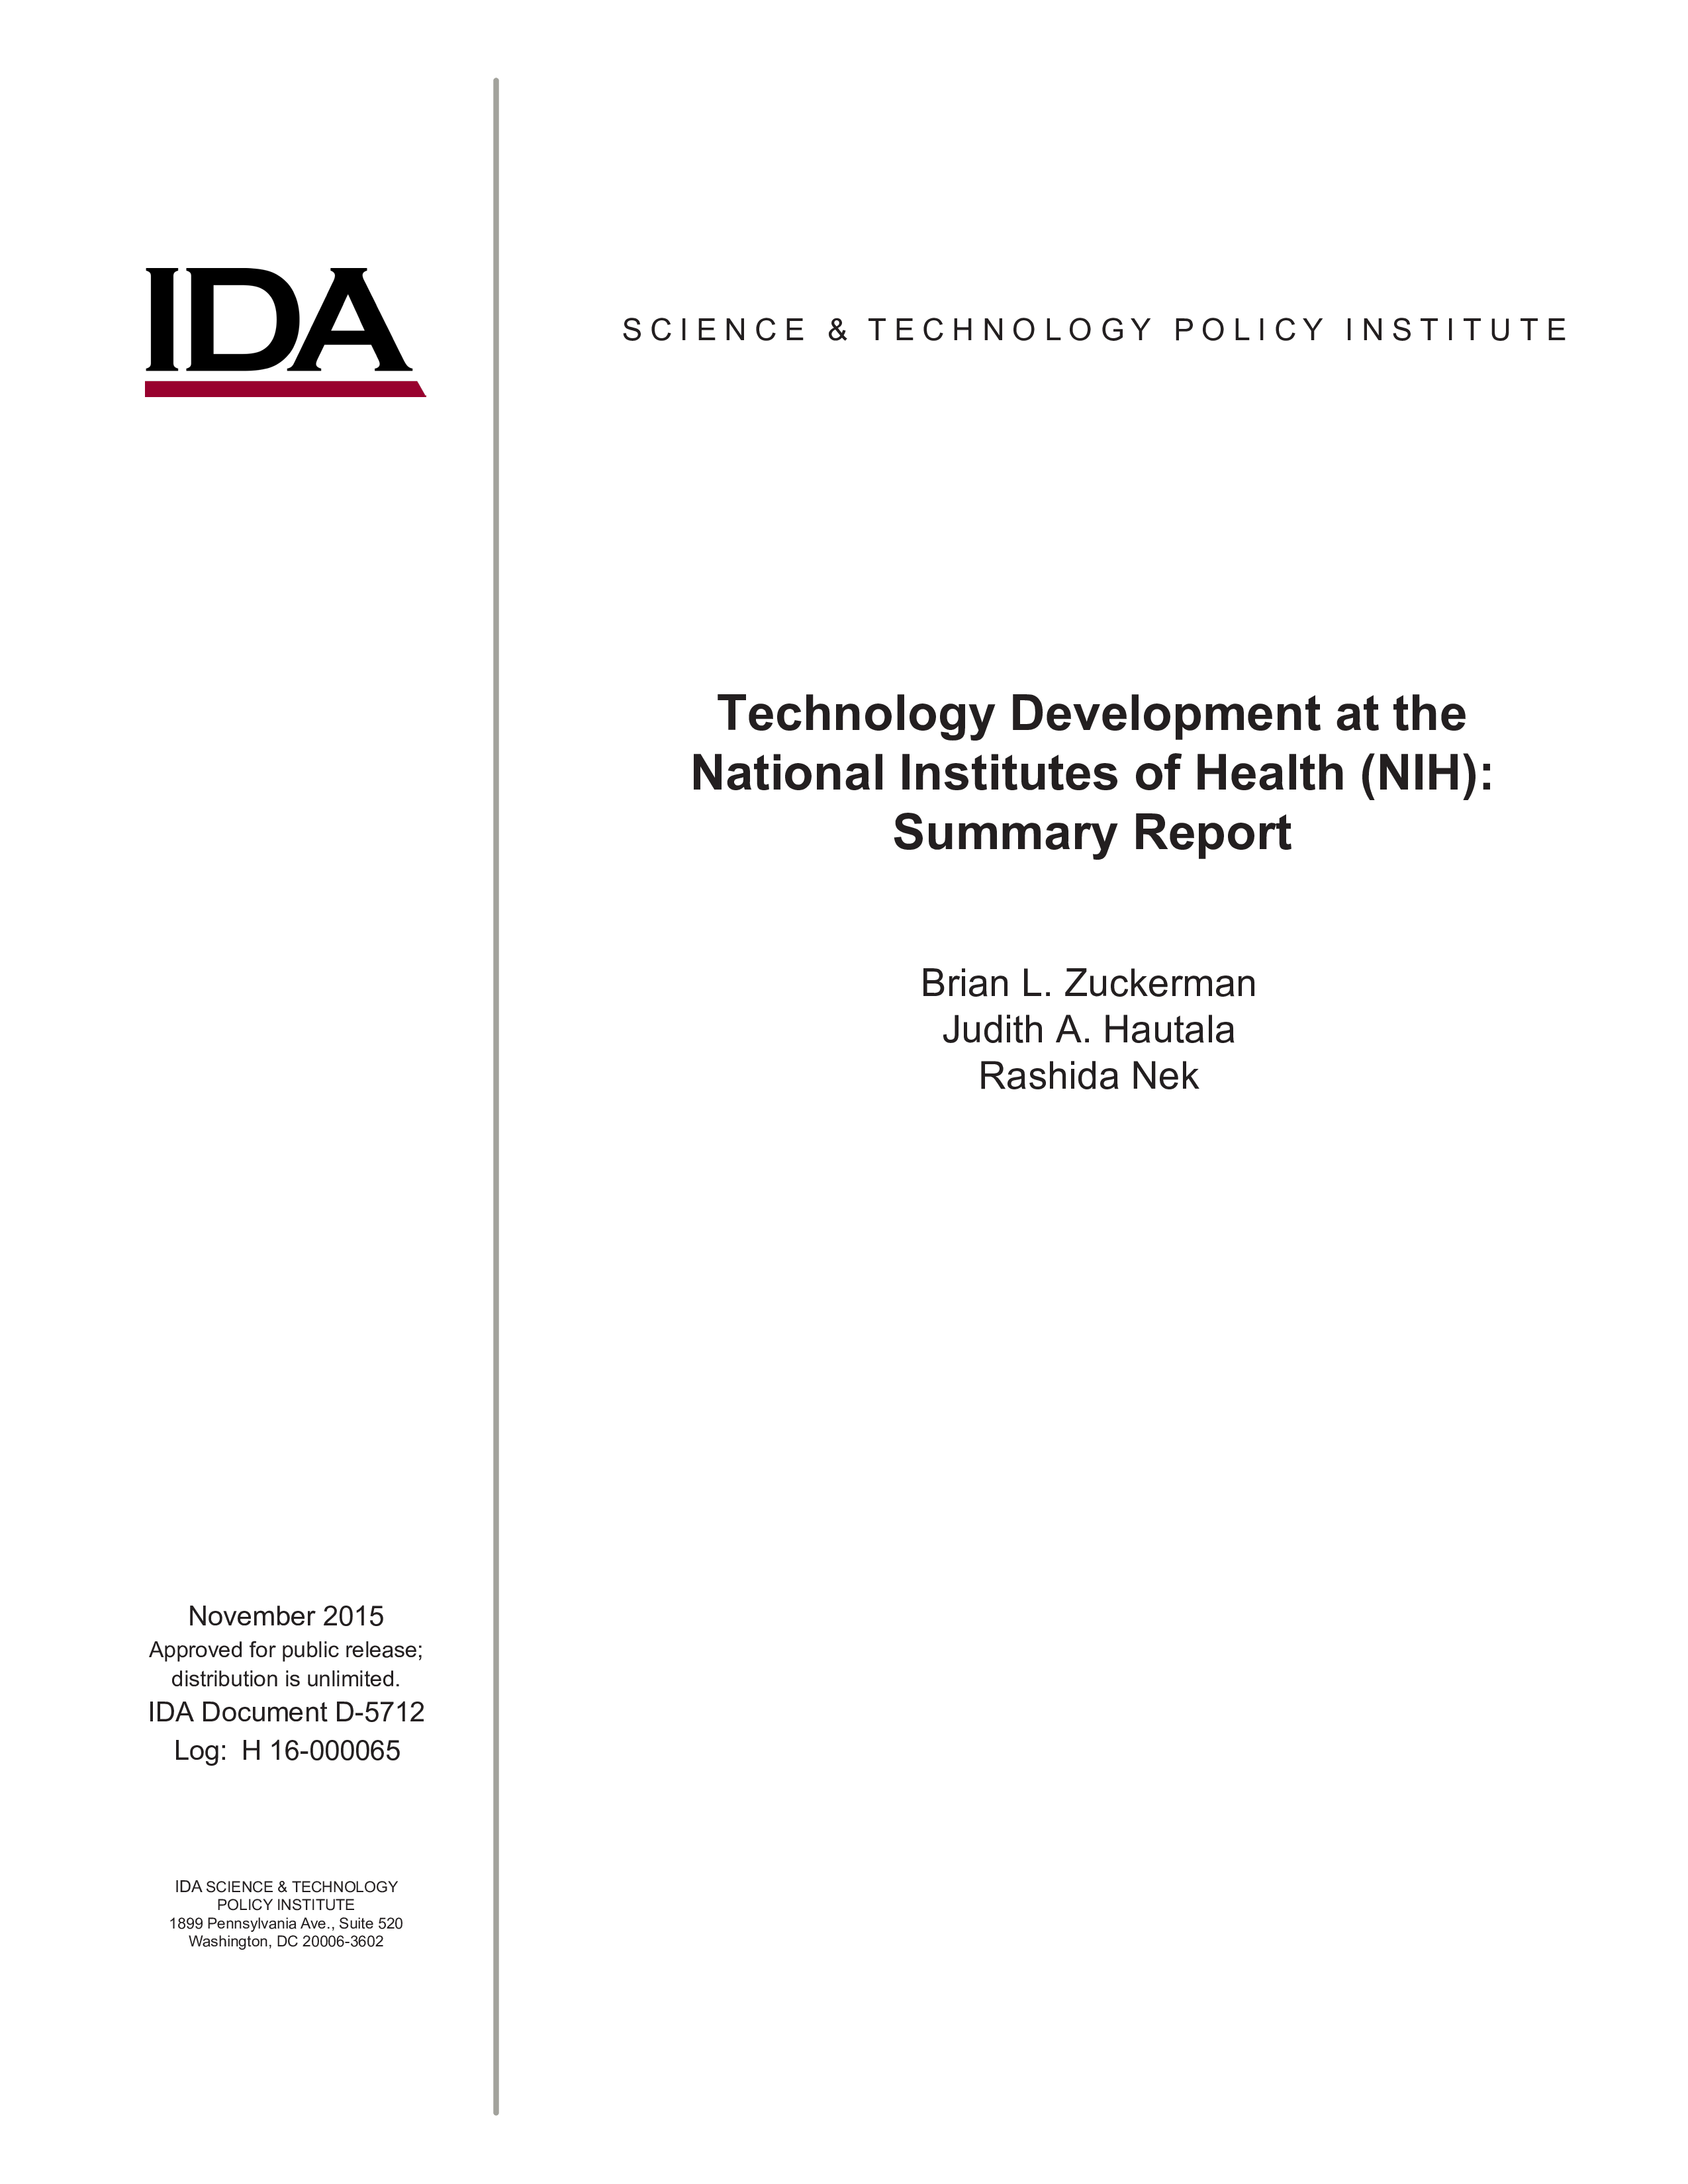 Technology Development at the National Institute of Health (NIH): Summary Report